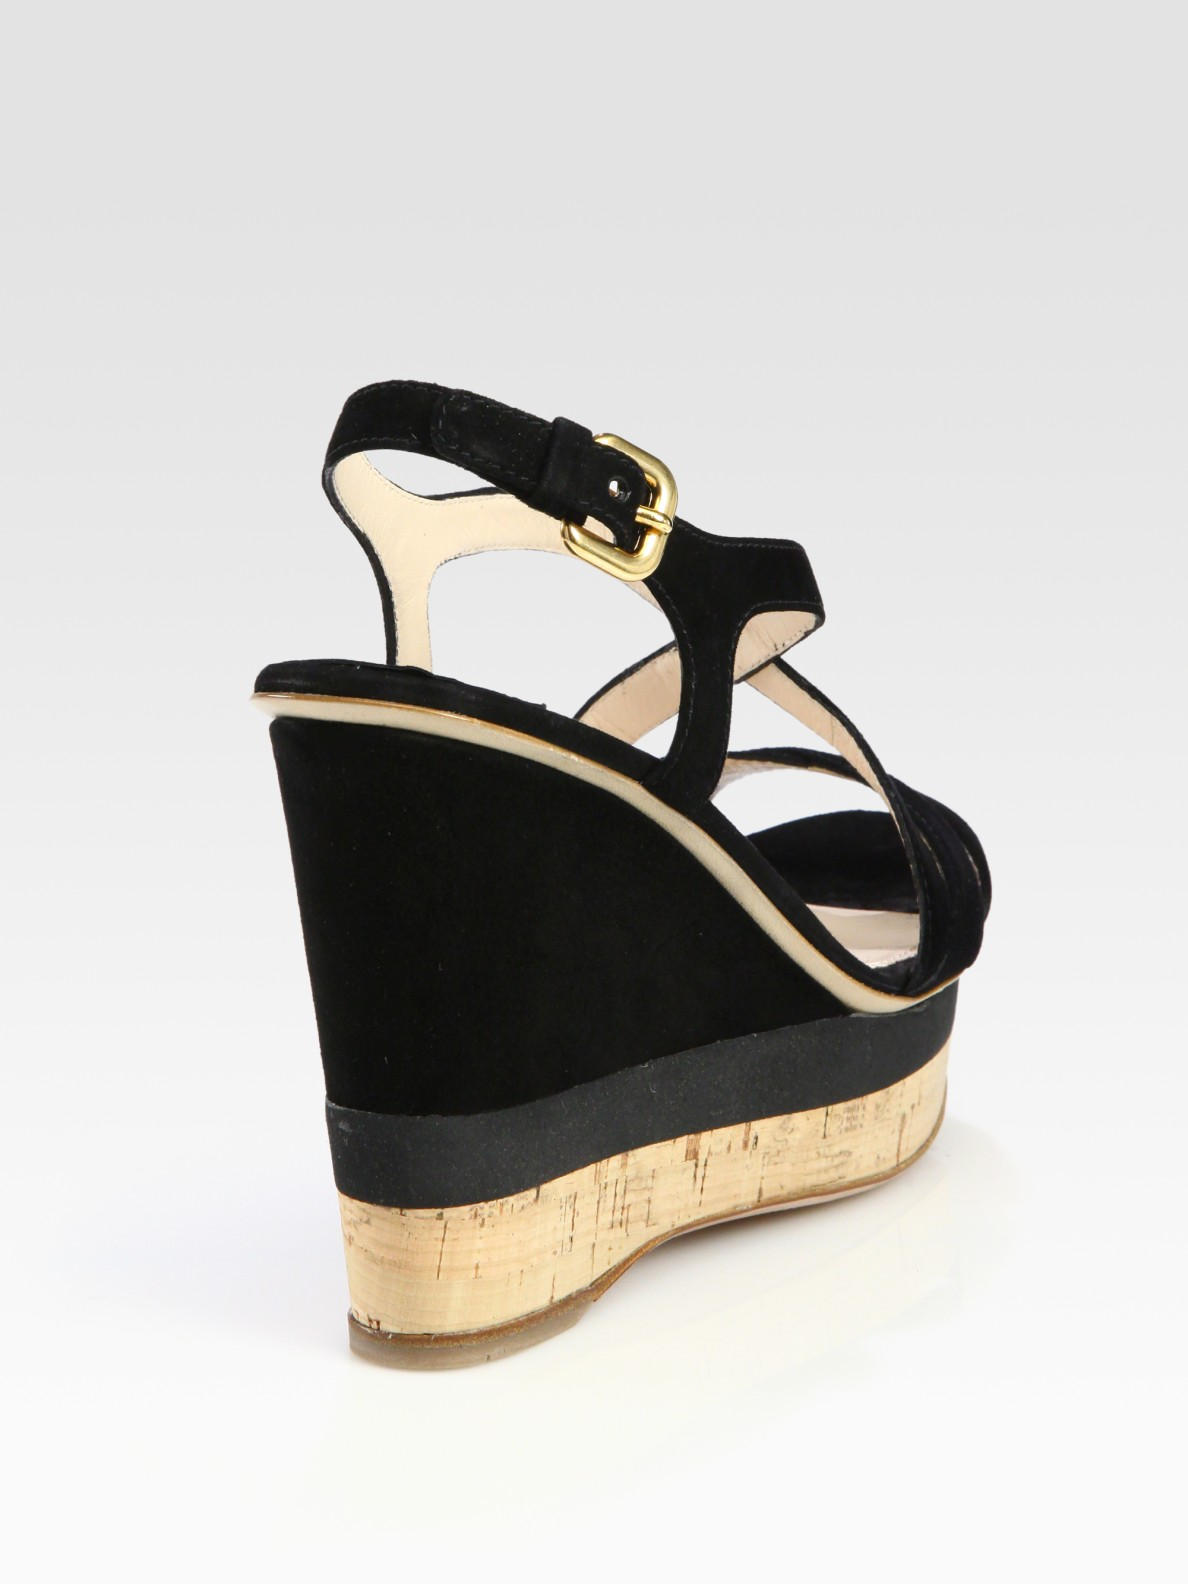 Prada Crossover Patent Leather Wedges free shipping 100% authentic cost for sale really sale online outlet amazon A1SwlGNZs